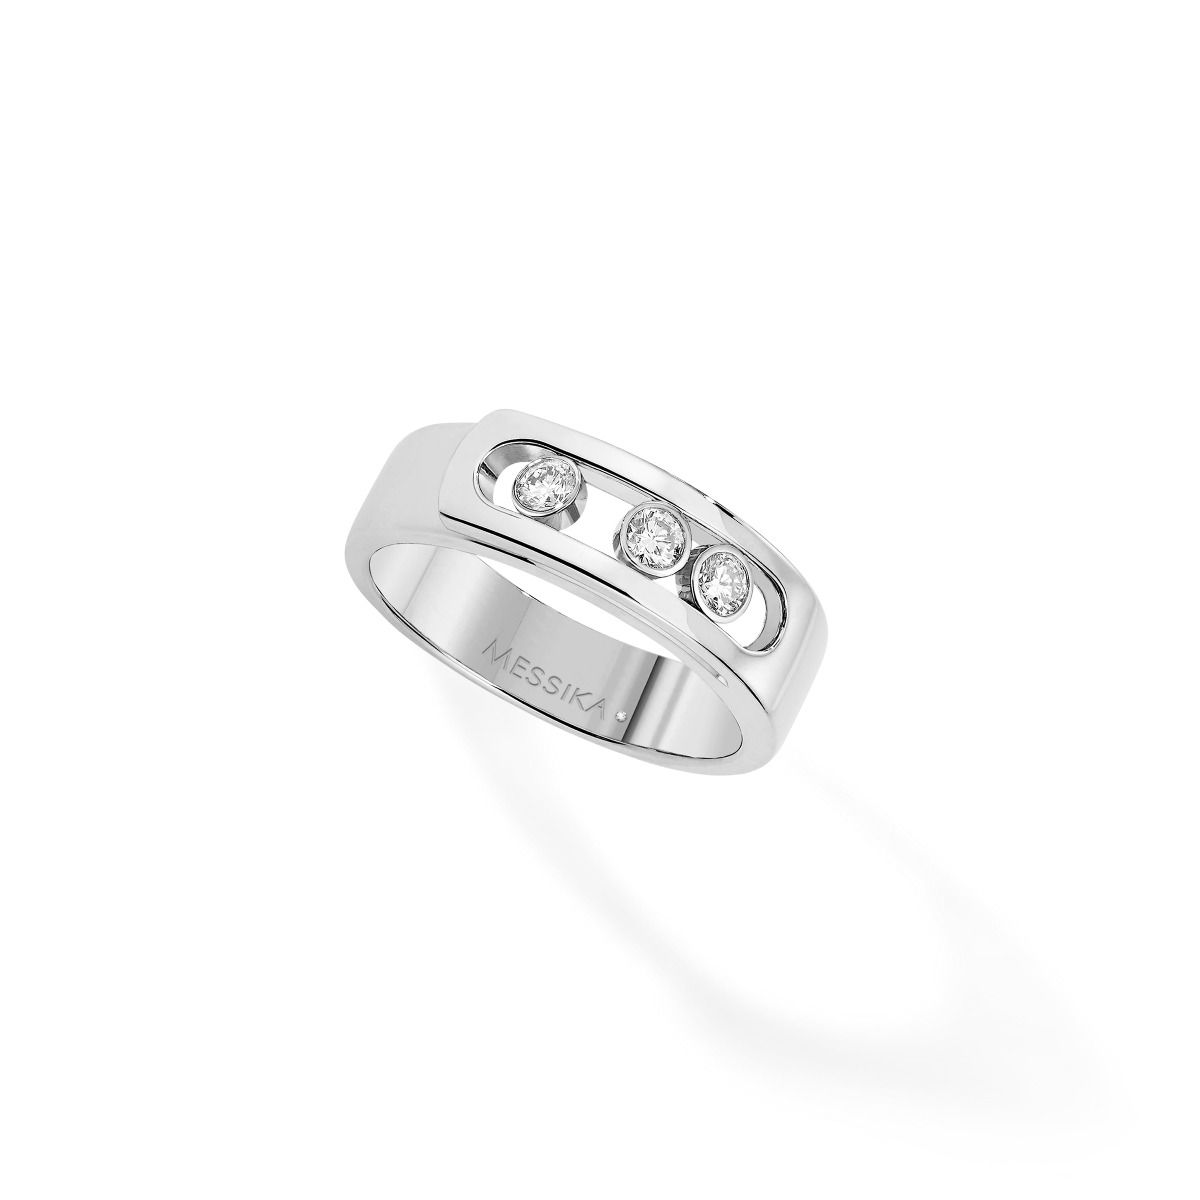 Move Noa Ring - White Gold